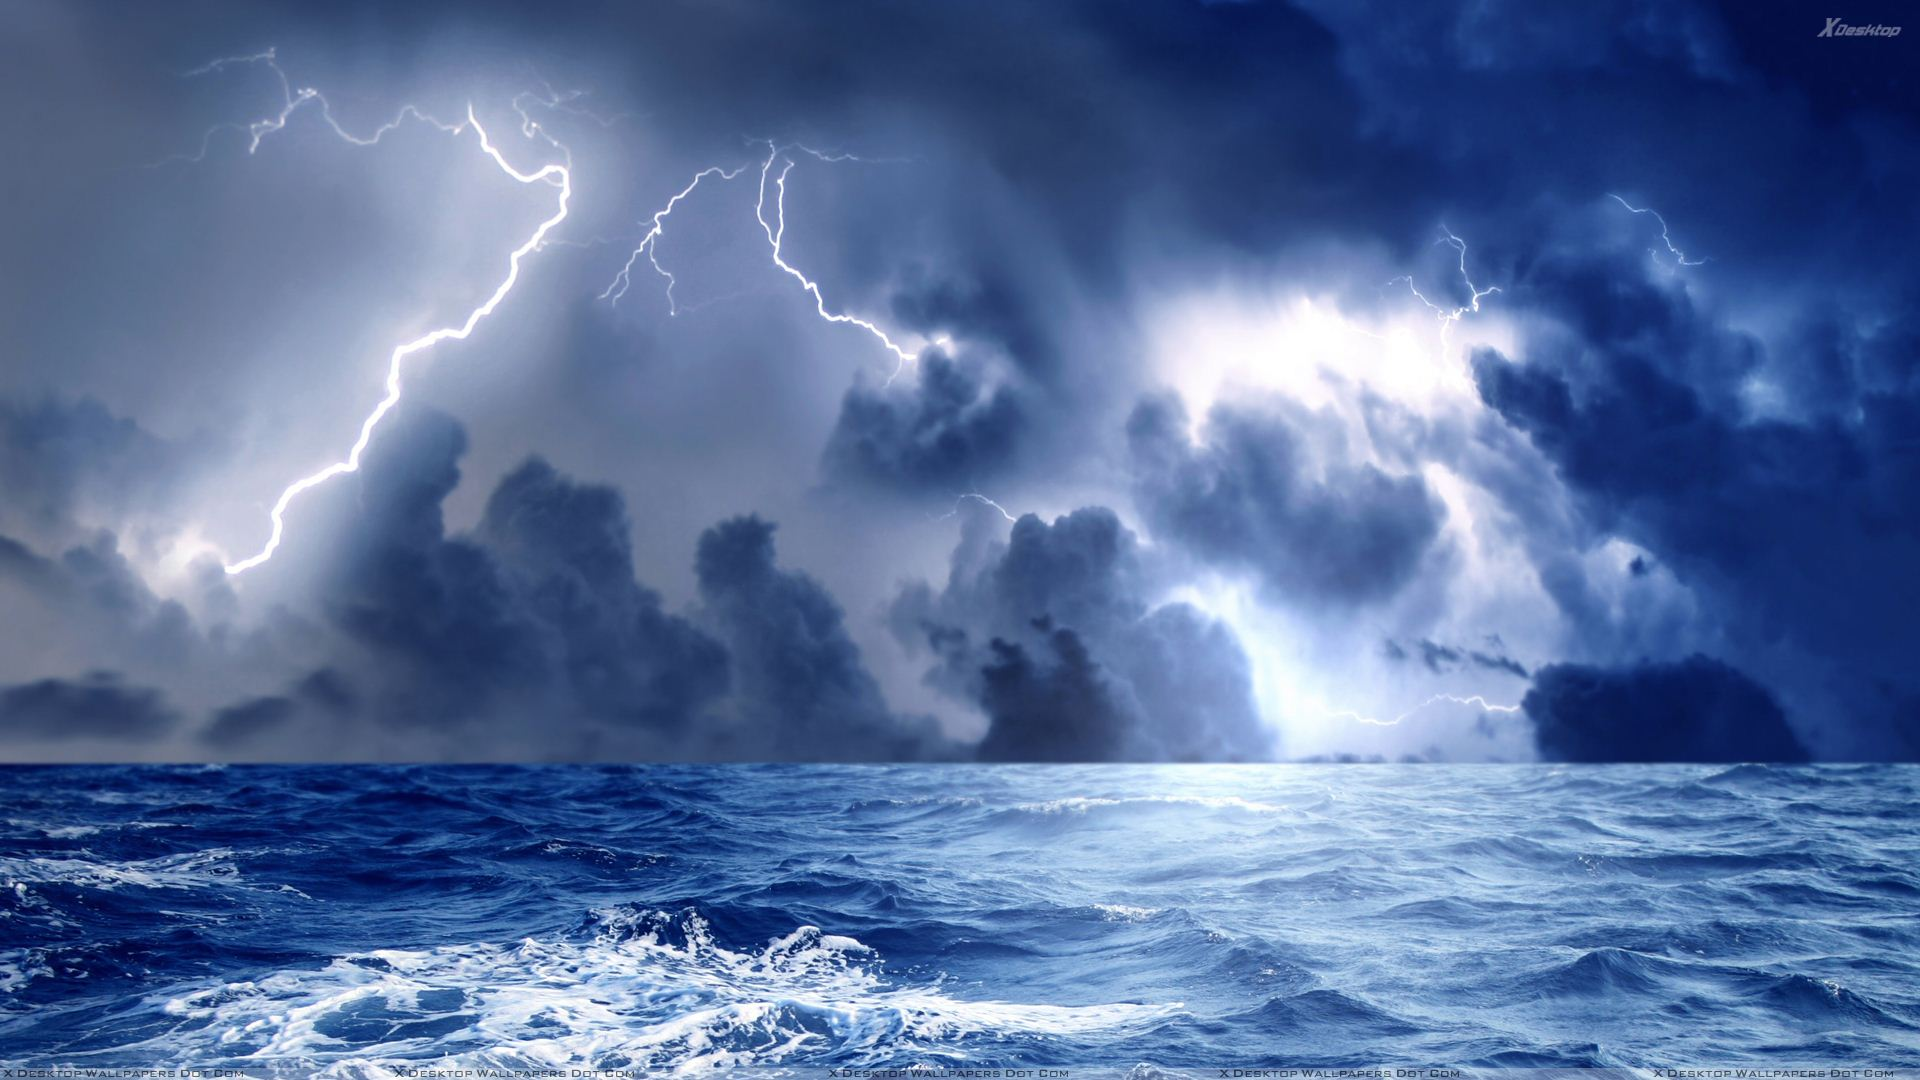 Amazing Storm Pictures & Backgrounds